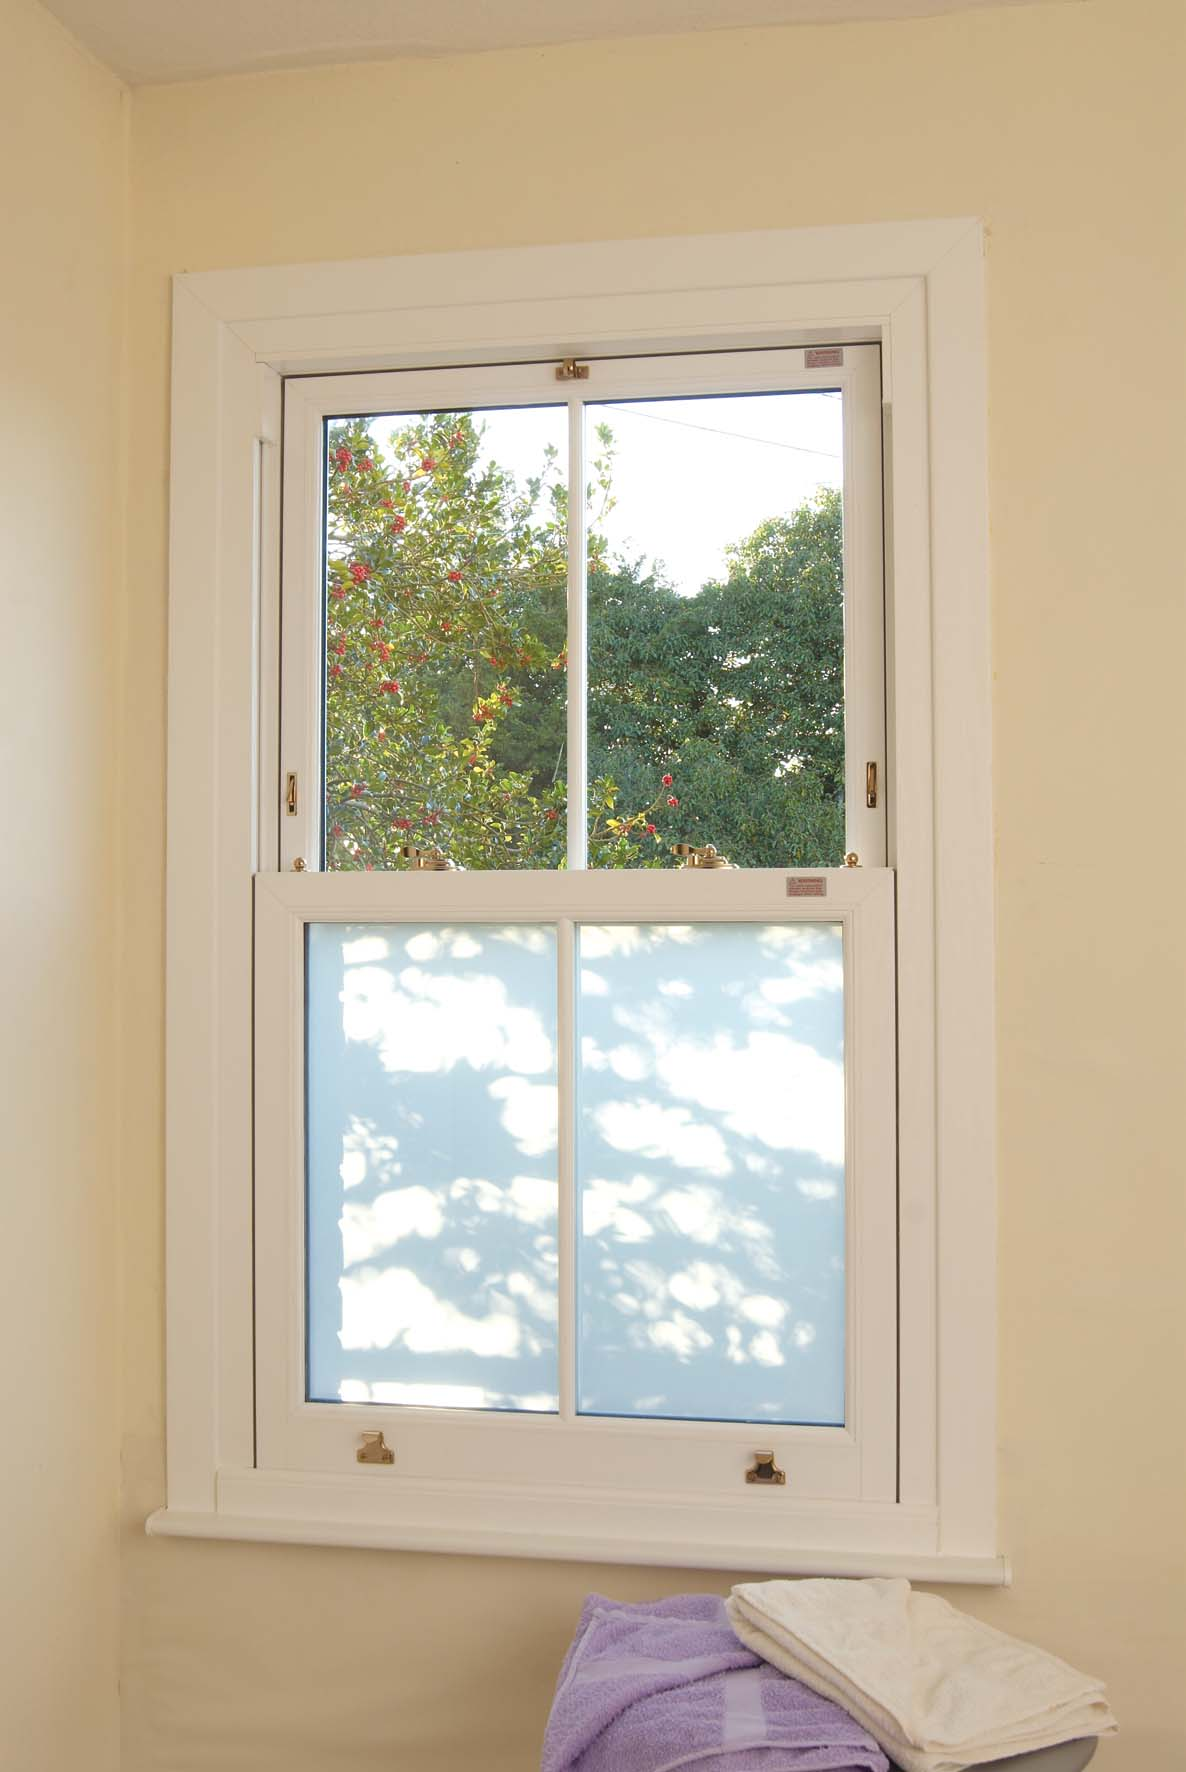 Frosted glass can be turned on and off